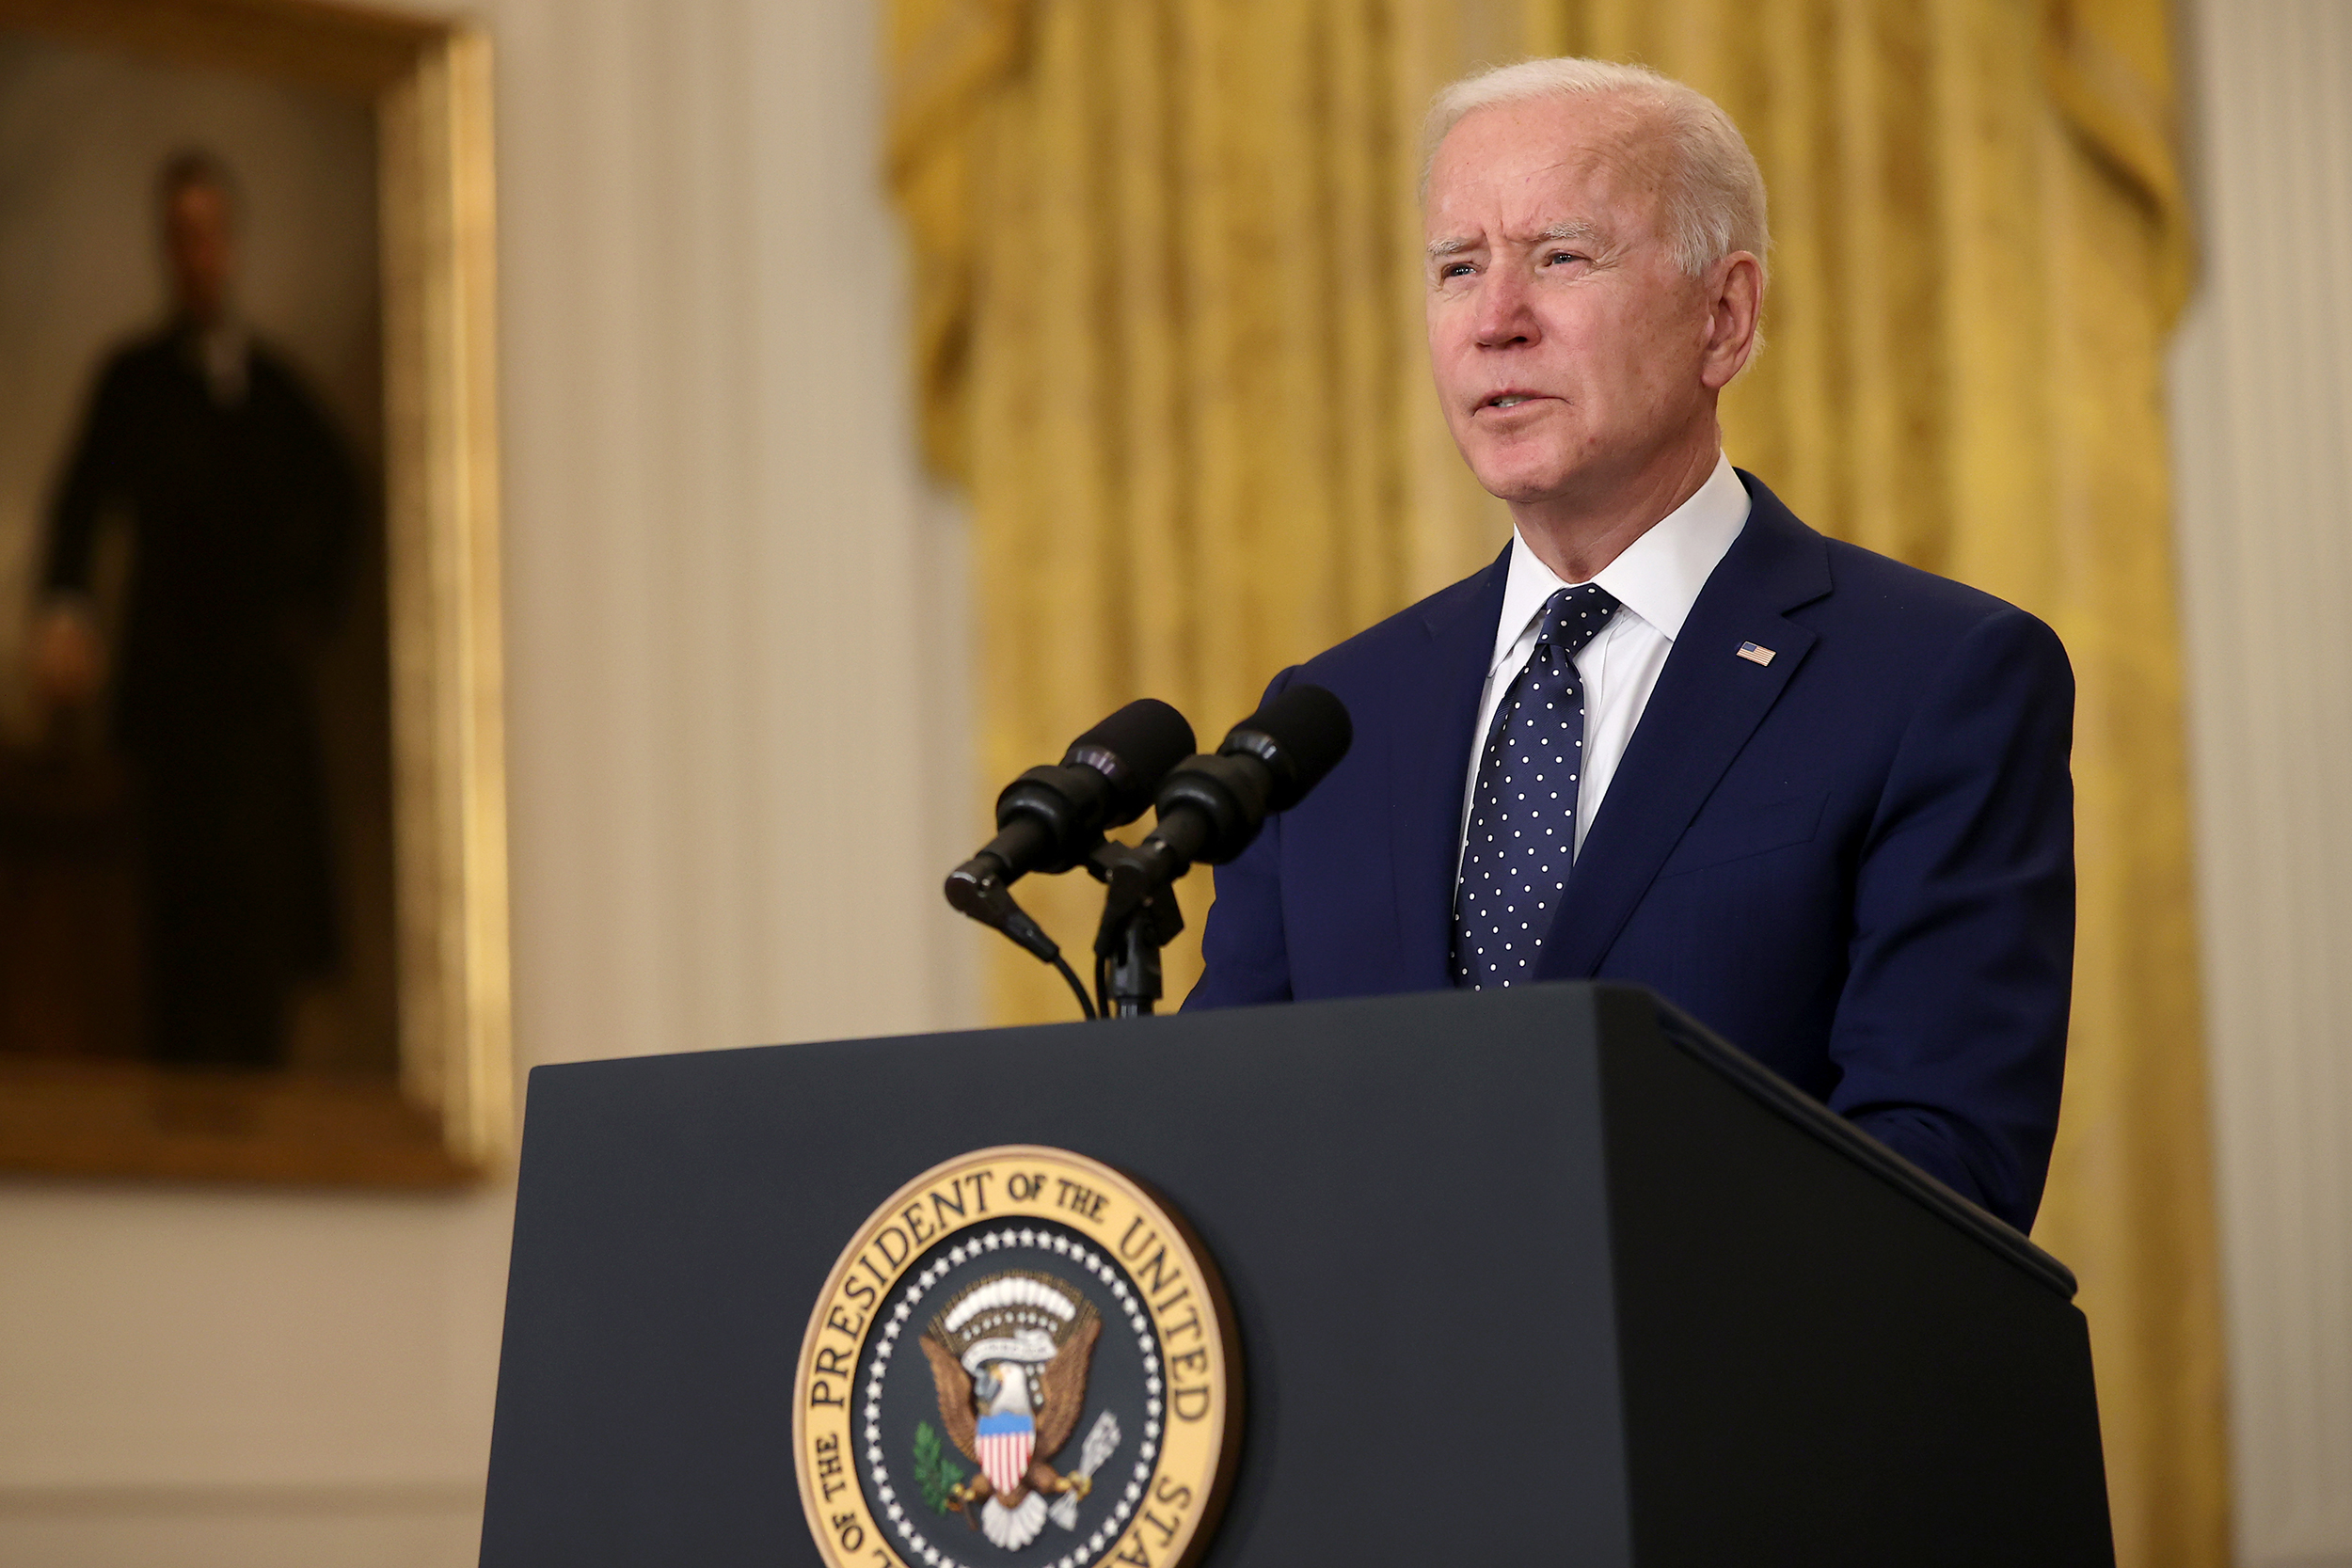 White House backtracks on refugees decision after criticism and says Biden will announce increased cap by May 15